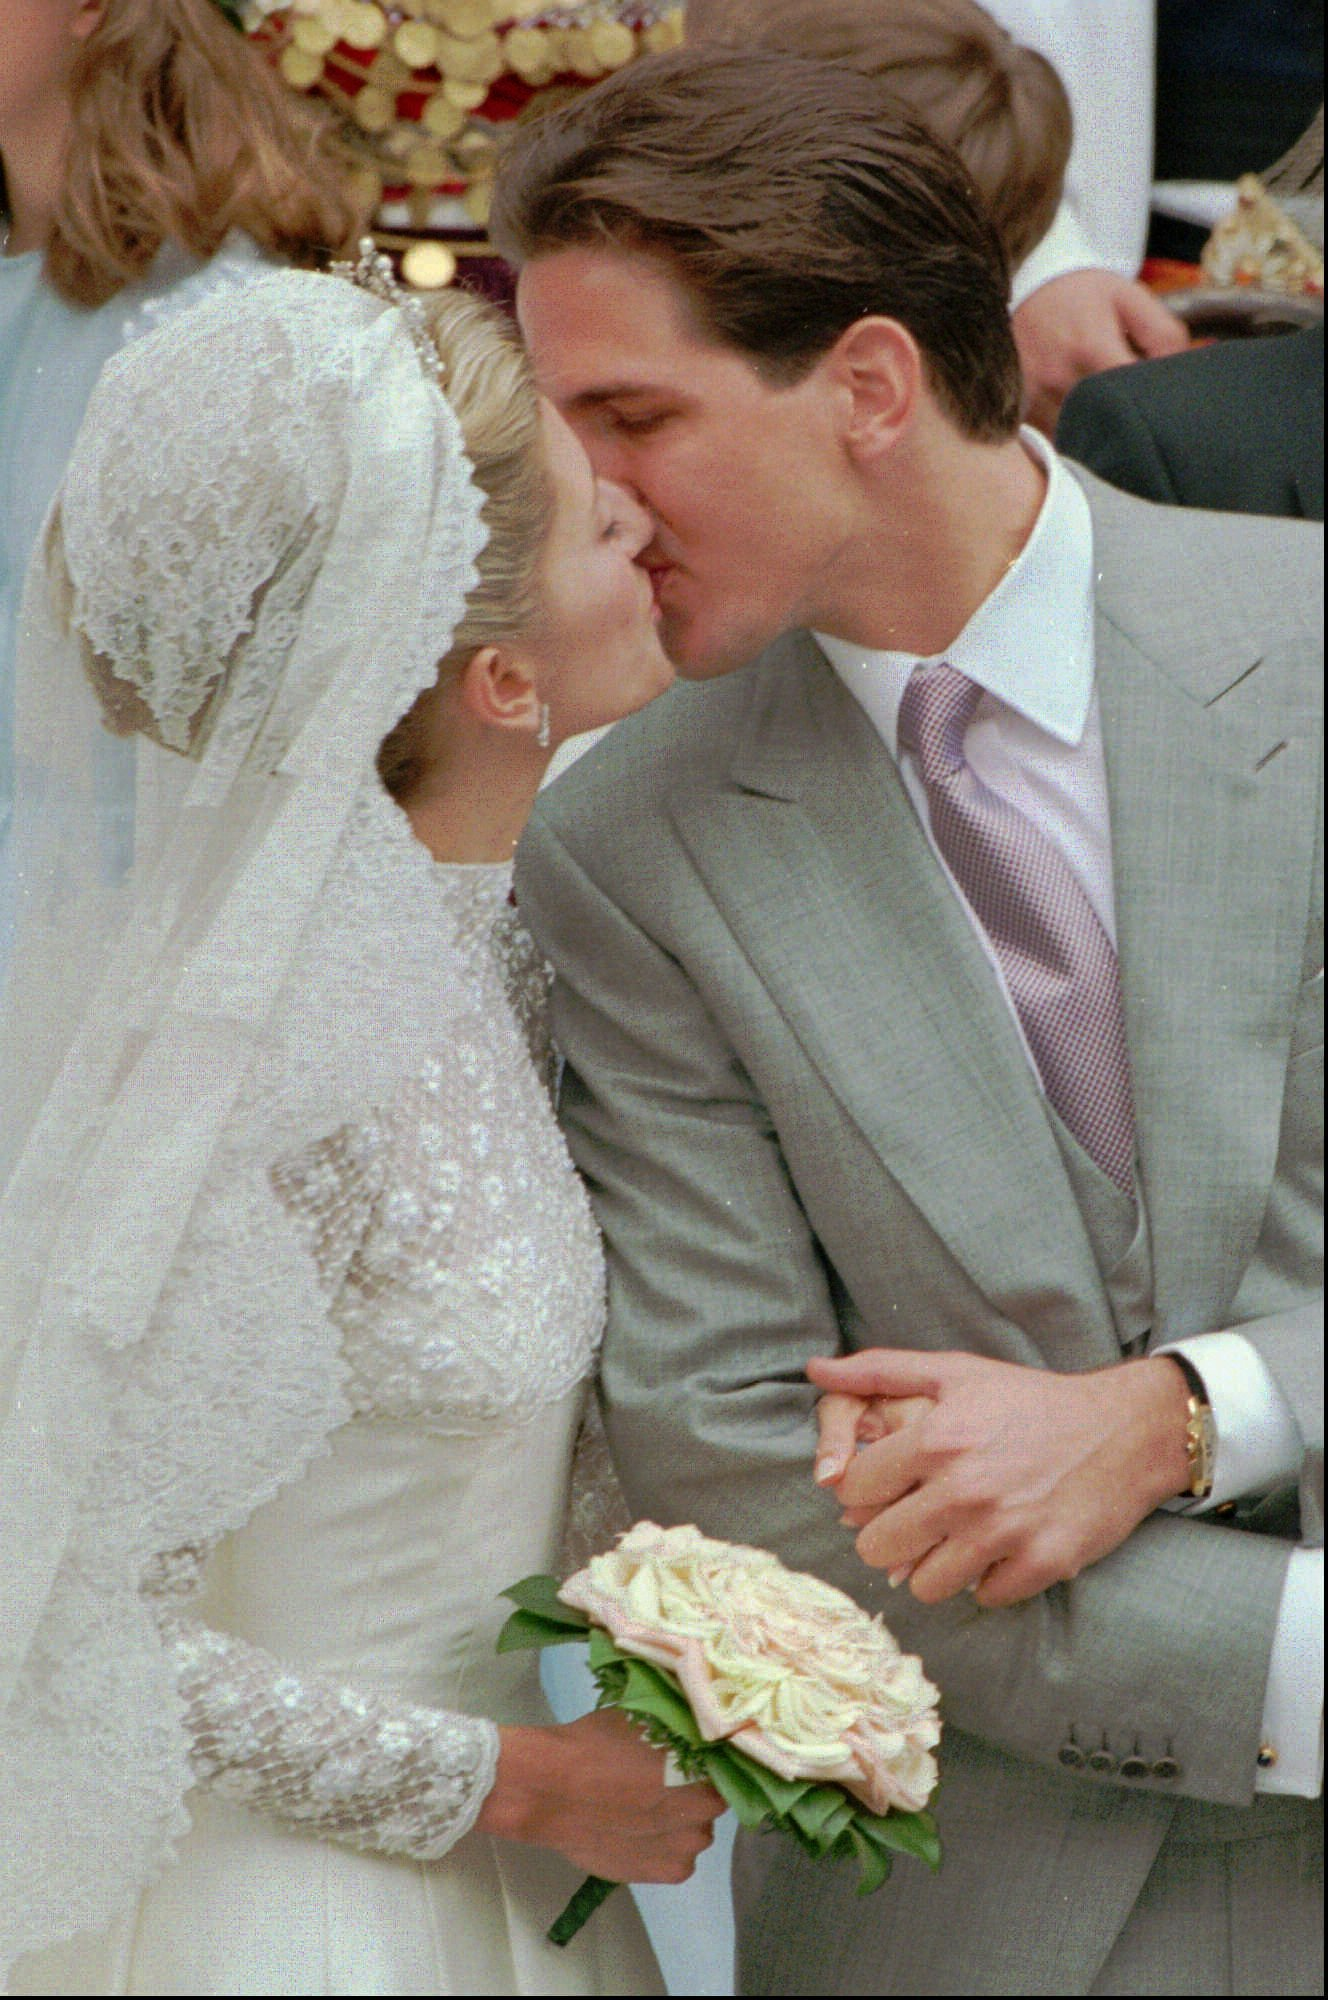 Crown Prince Pavlos of Greece kisses his new bride Marie-Chantal following their wedding at the Greek Cathedral in London, Saturday, July 1, 1995.